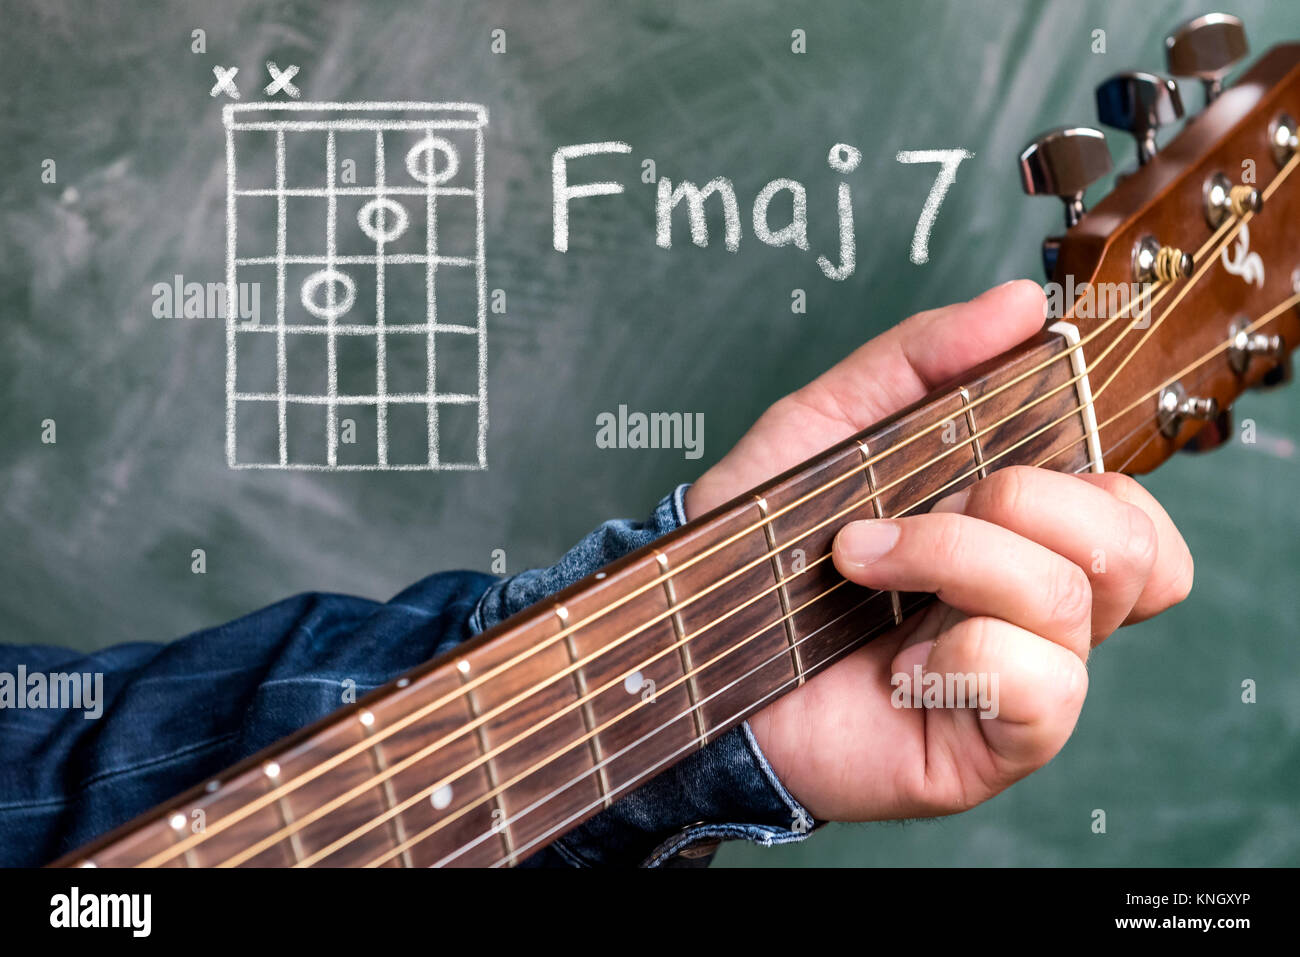 Man In A Blue Denim Shirt Playing Guitar Chords Displayed On A Stock